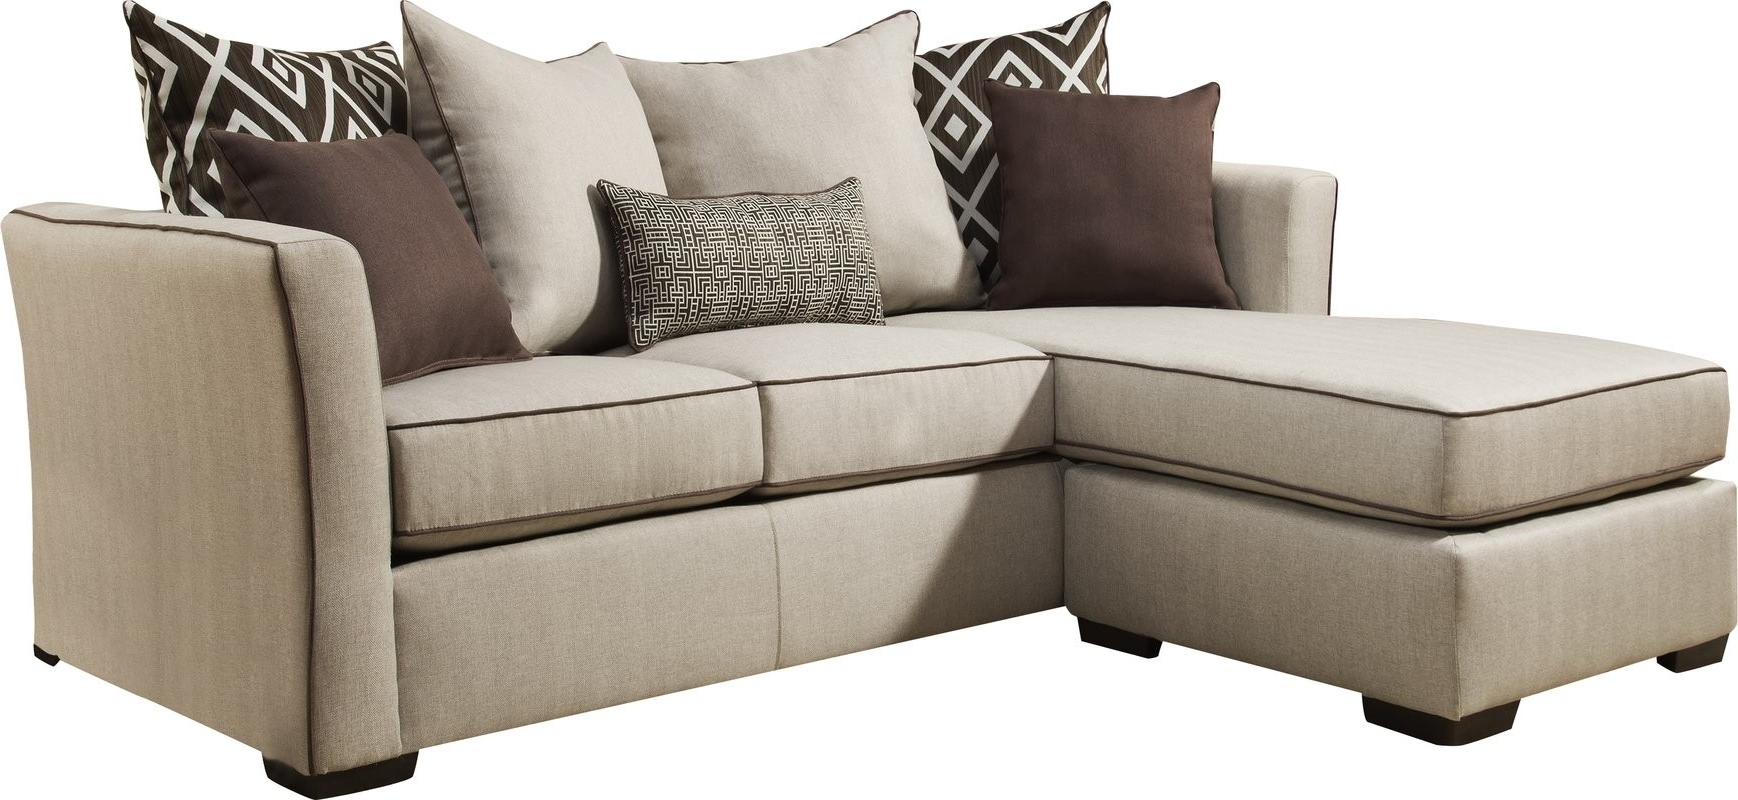 Joss And Main Sectional Sofas Pertaining To 2019 Elegant Simmons Sectional Sofa Joss And Main – Mediasupload (View 12 of 20)